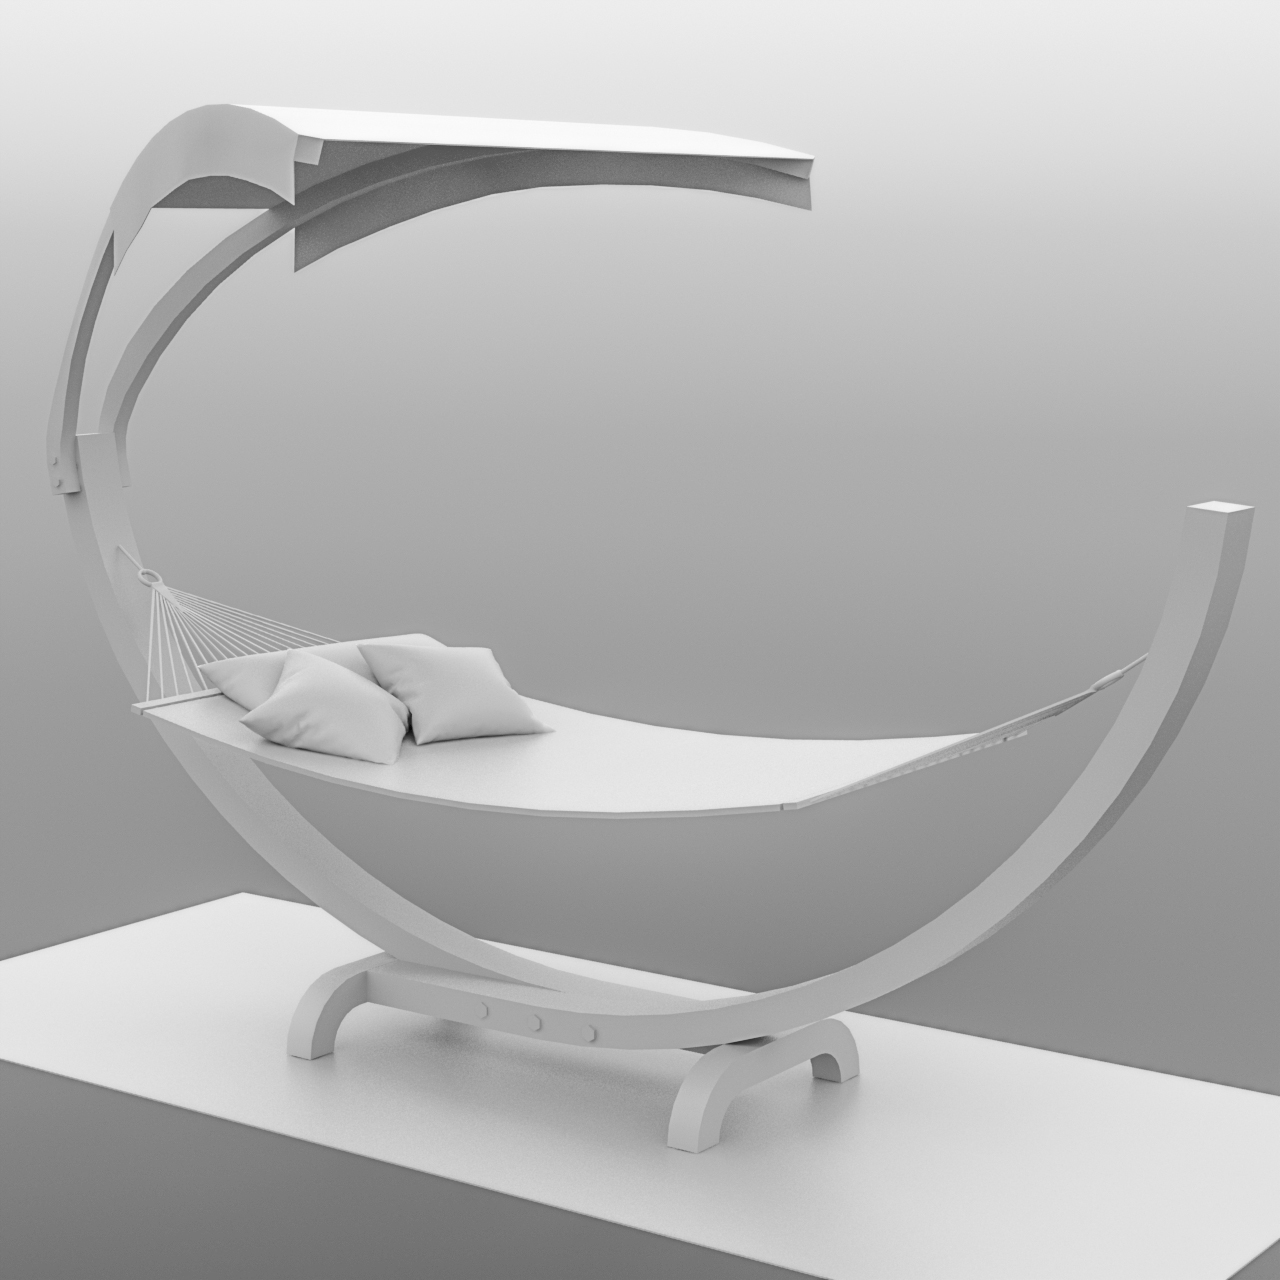 hammock for Second Life, work in progress, with no textures